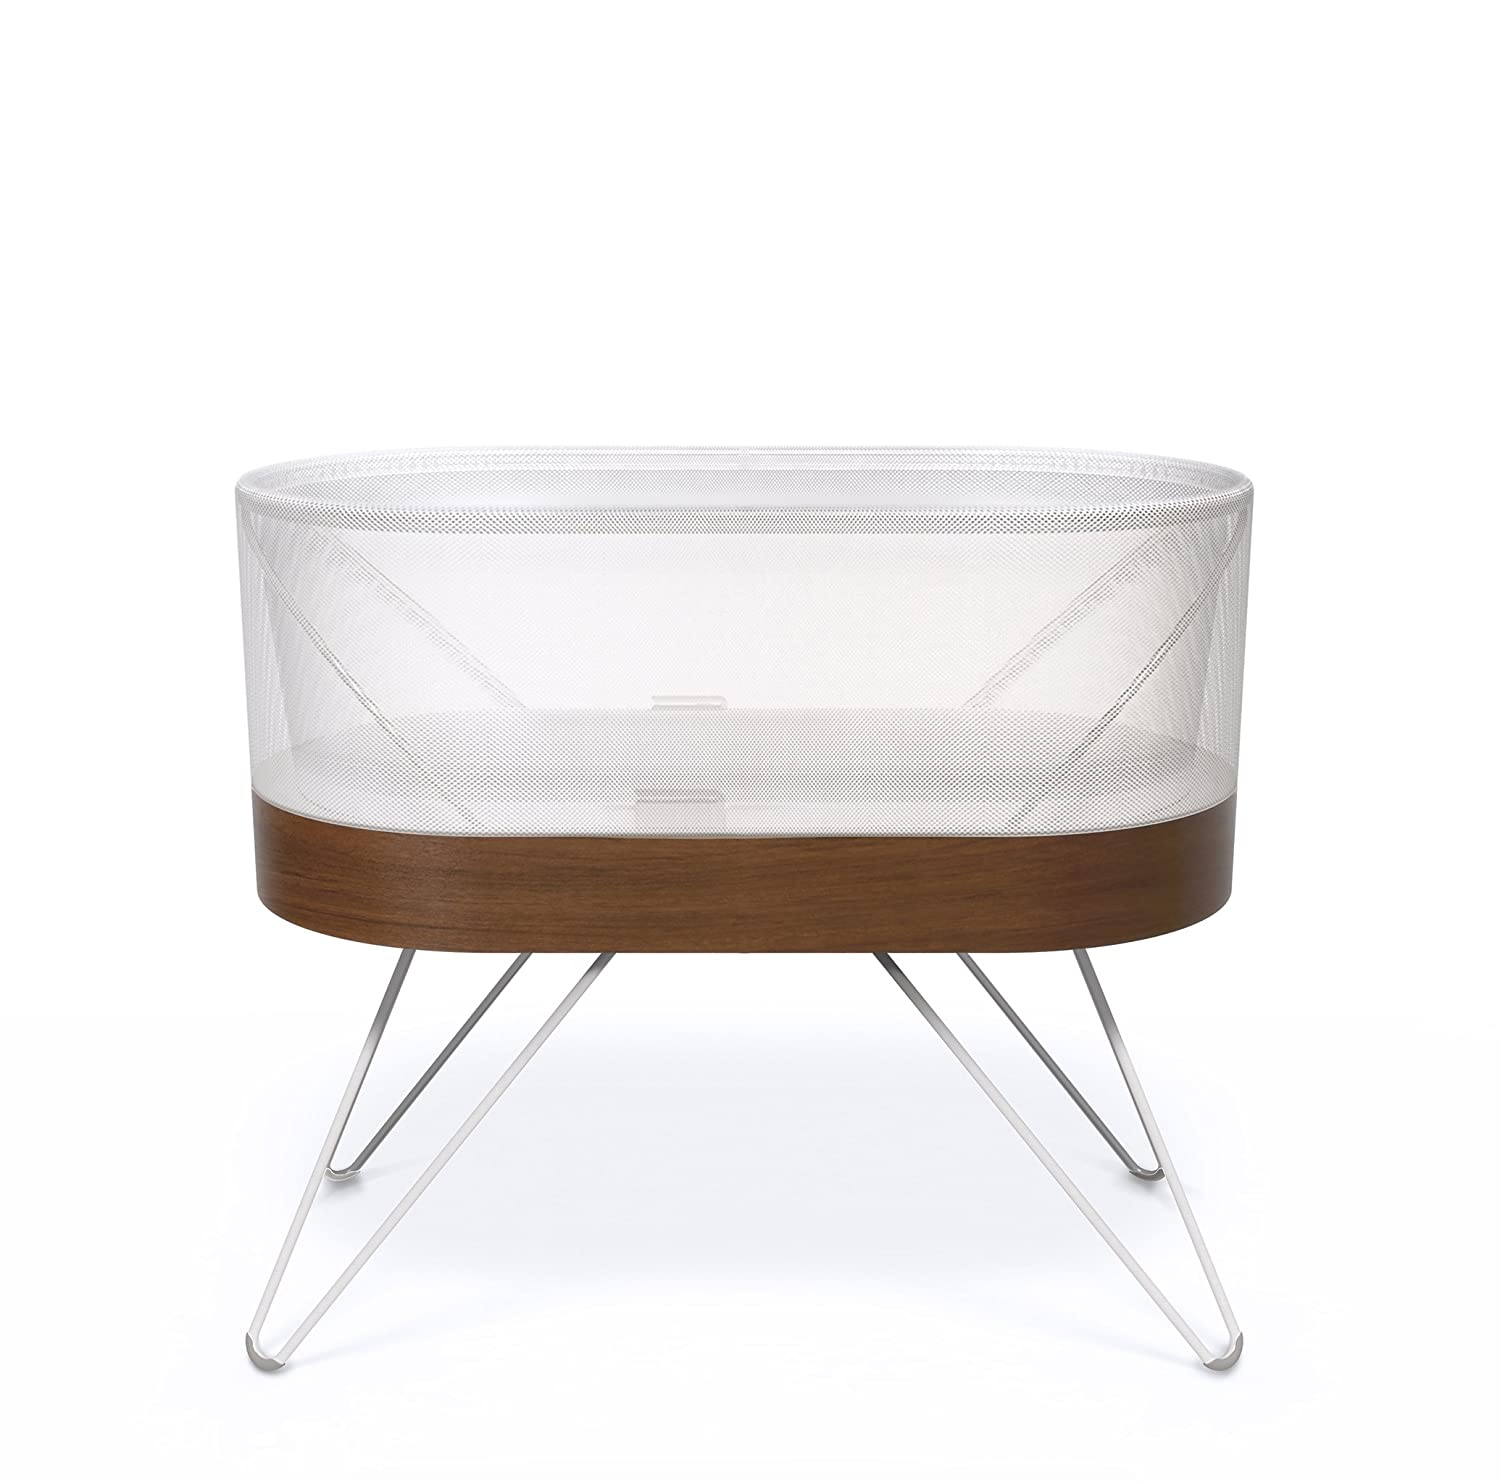 Snoo Smart Baby Sleeper and Bassinet, $1,495